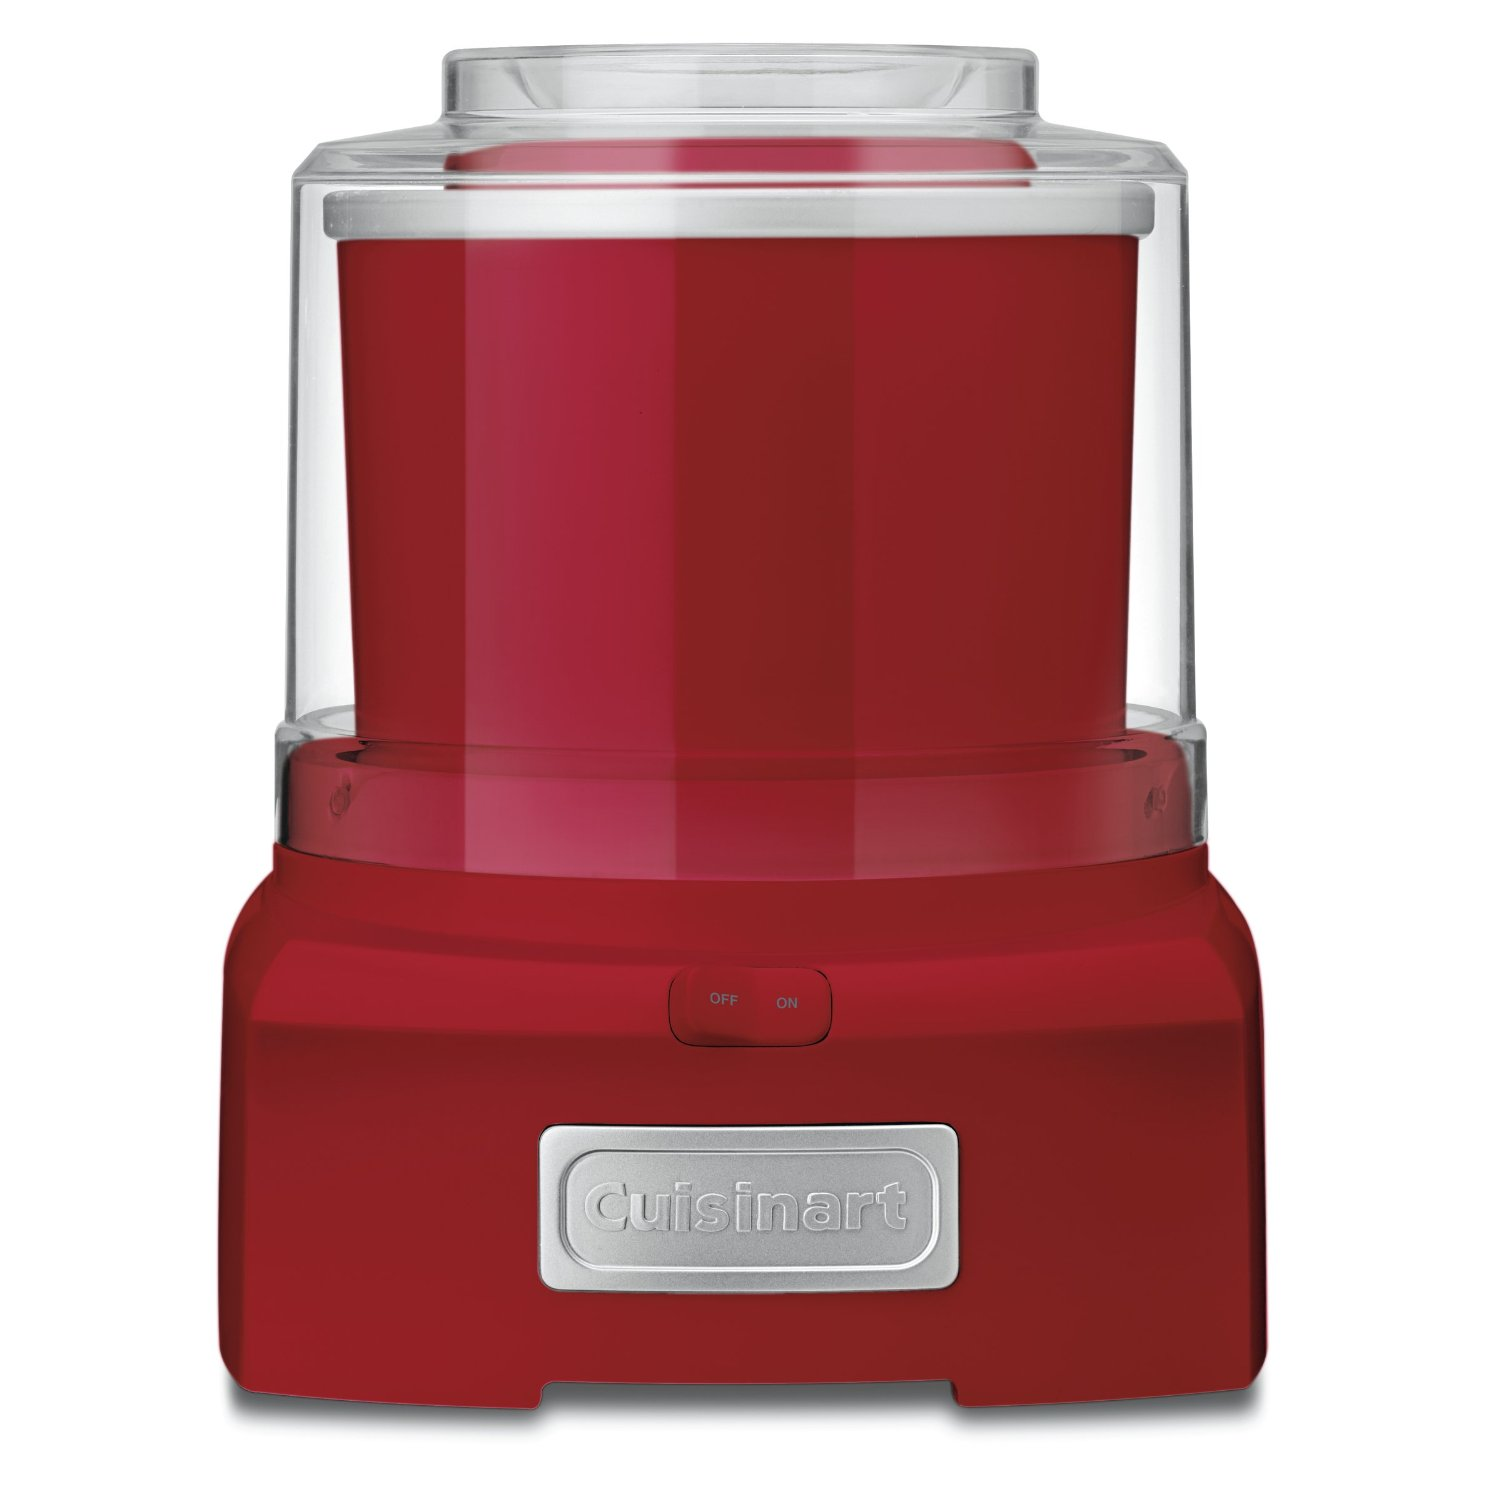 Cuisinart ICE-21 – The Best Ice Cream And Frozen Desserts Maker